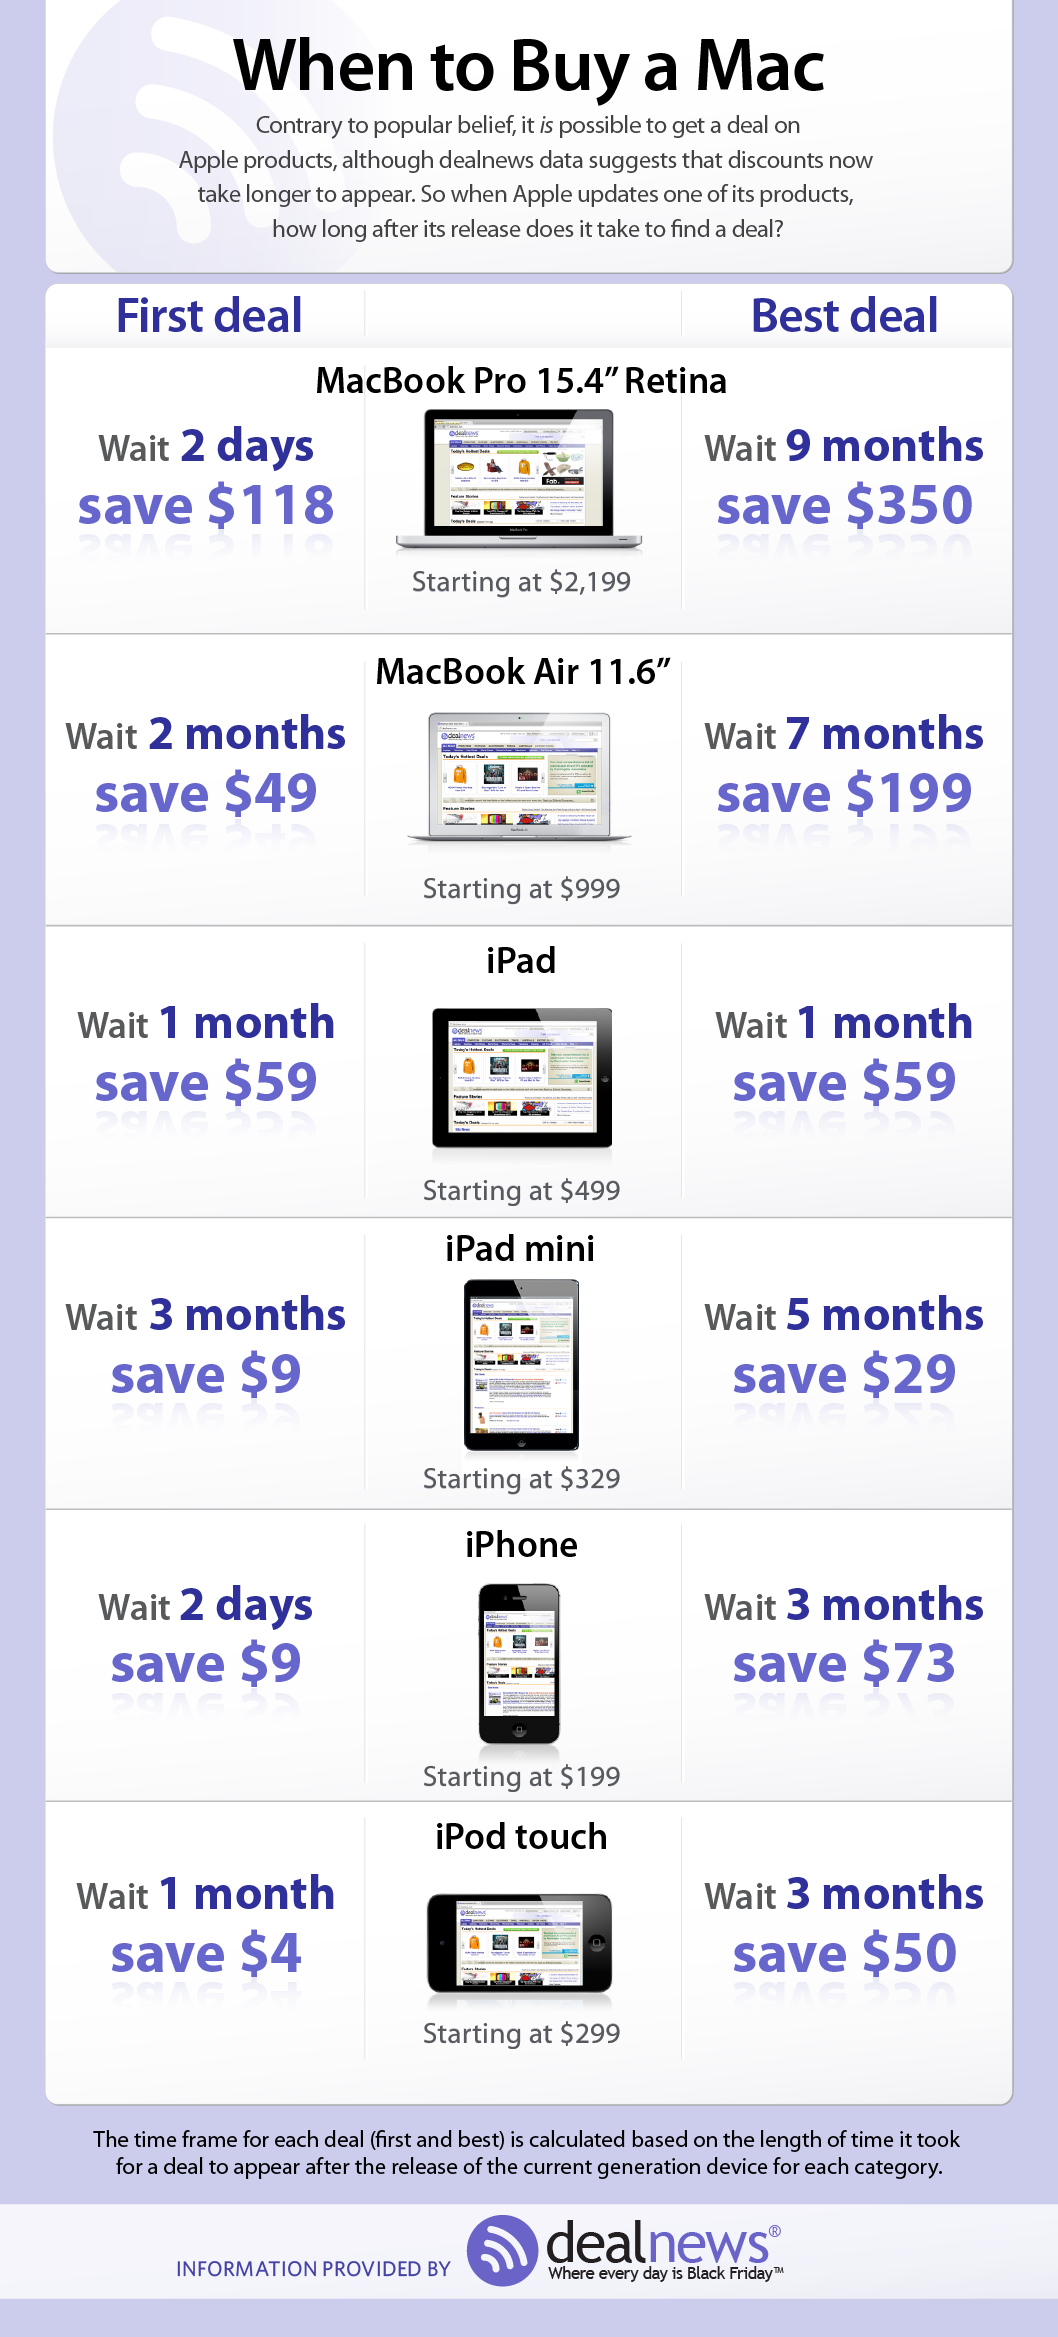 Apple Deals: When To Buy iPhones, iPads, and Macs {Infographic}